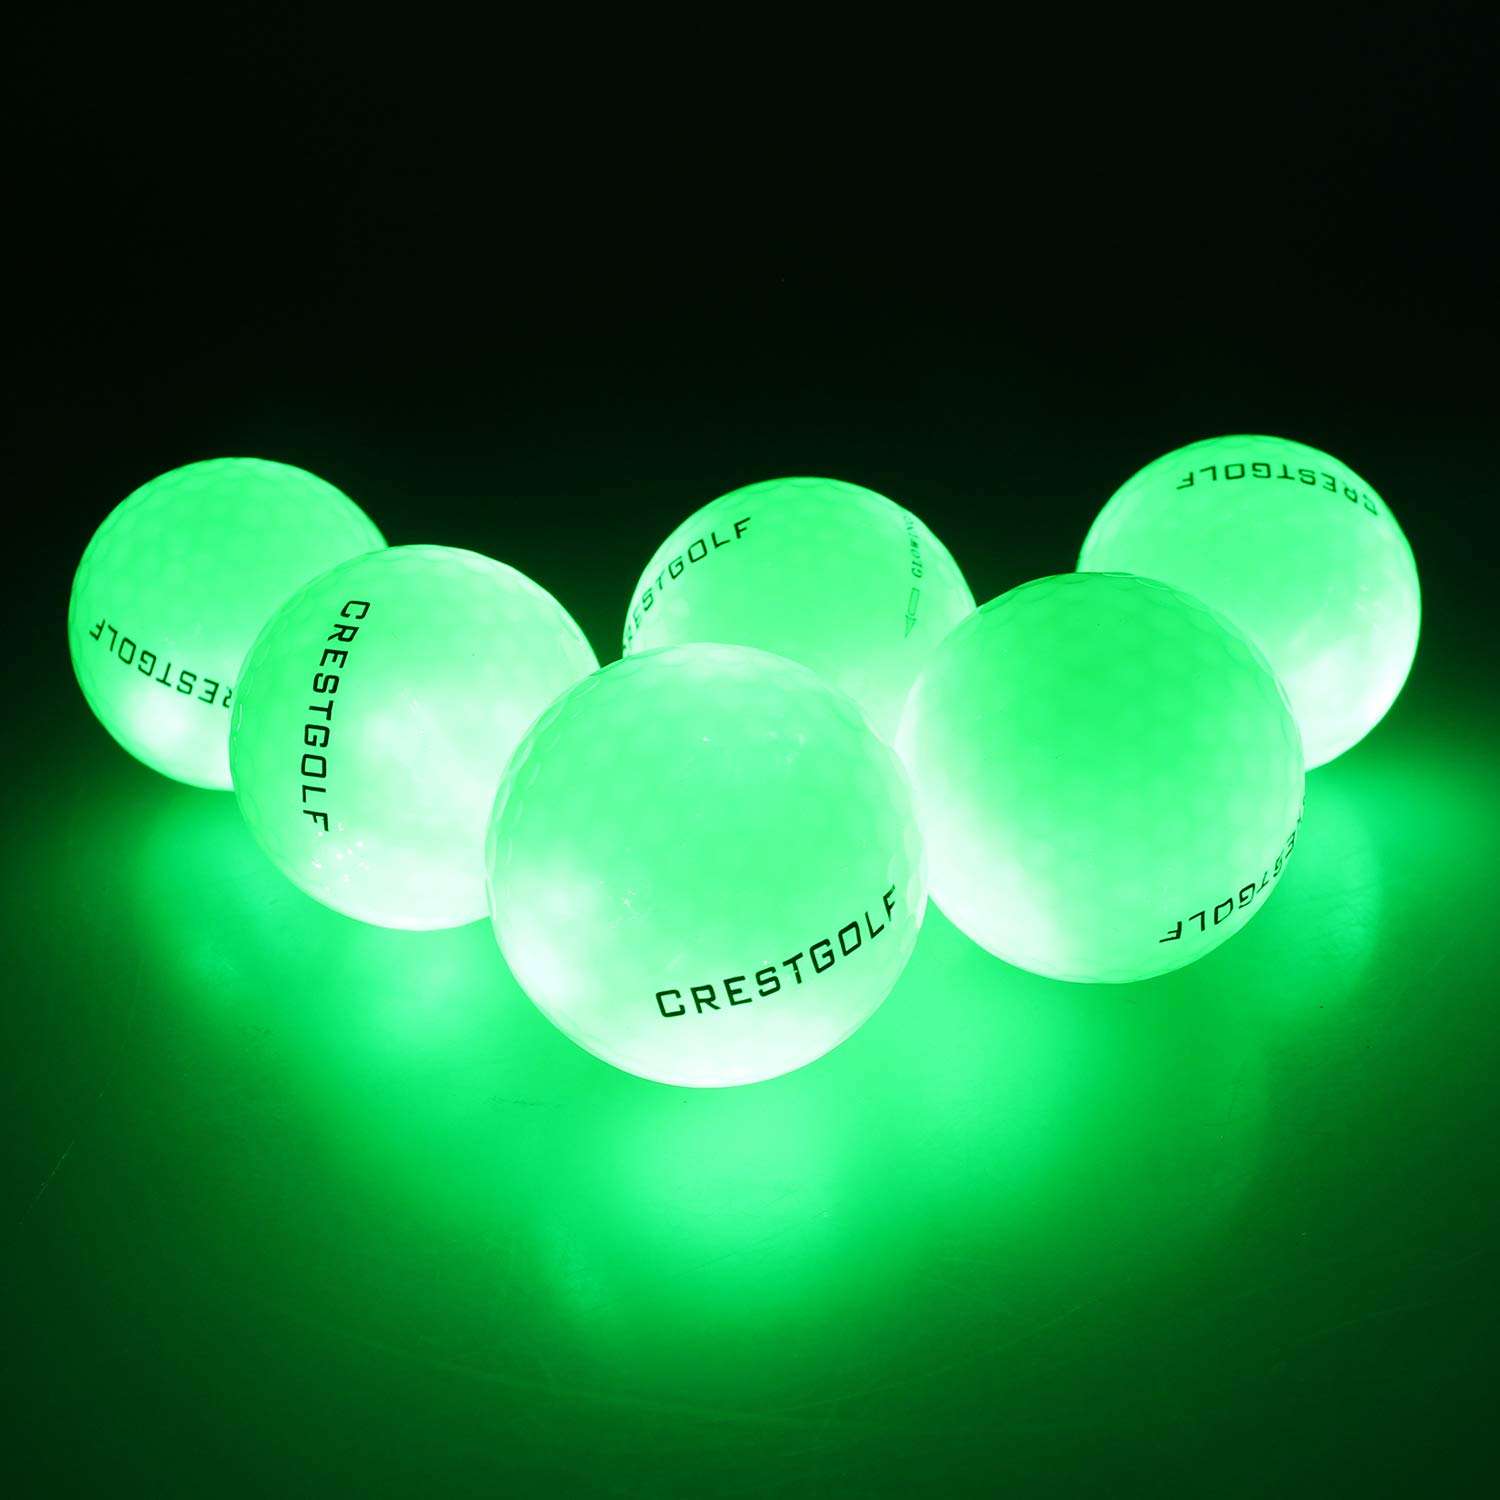 Crestgolf Flashing Glowing Golf Ball,Night Glow Flash Light up LED Golf Ball (6 Pack),six Color for Your Choice (Green) by Crestgolf